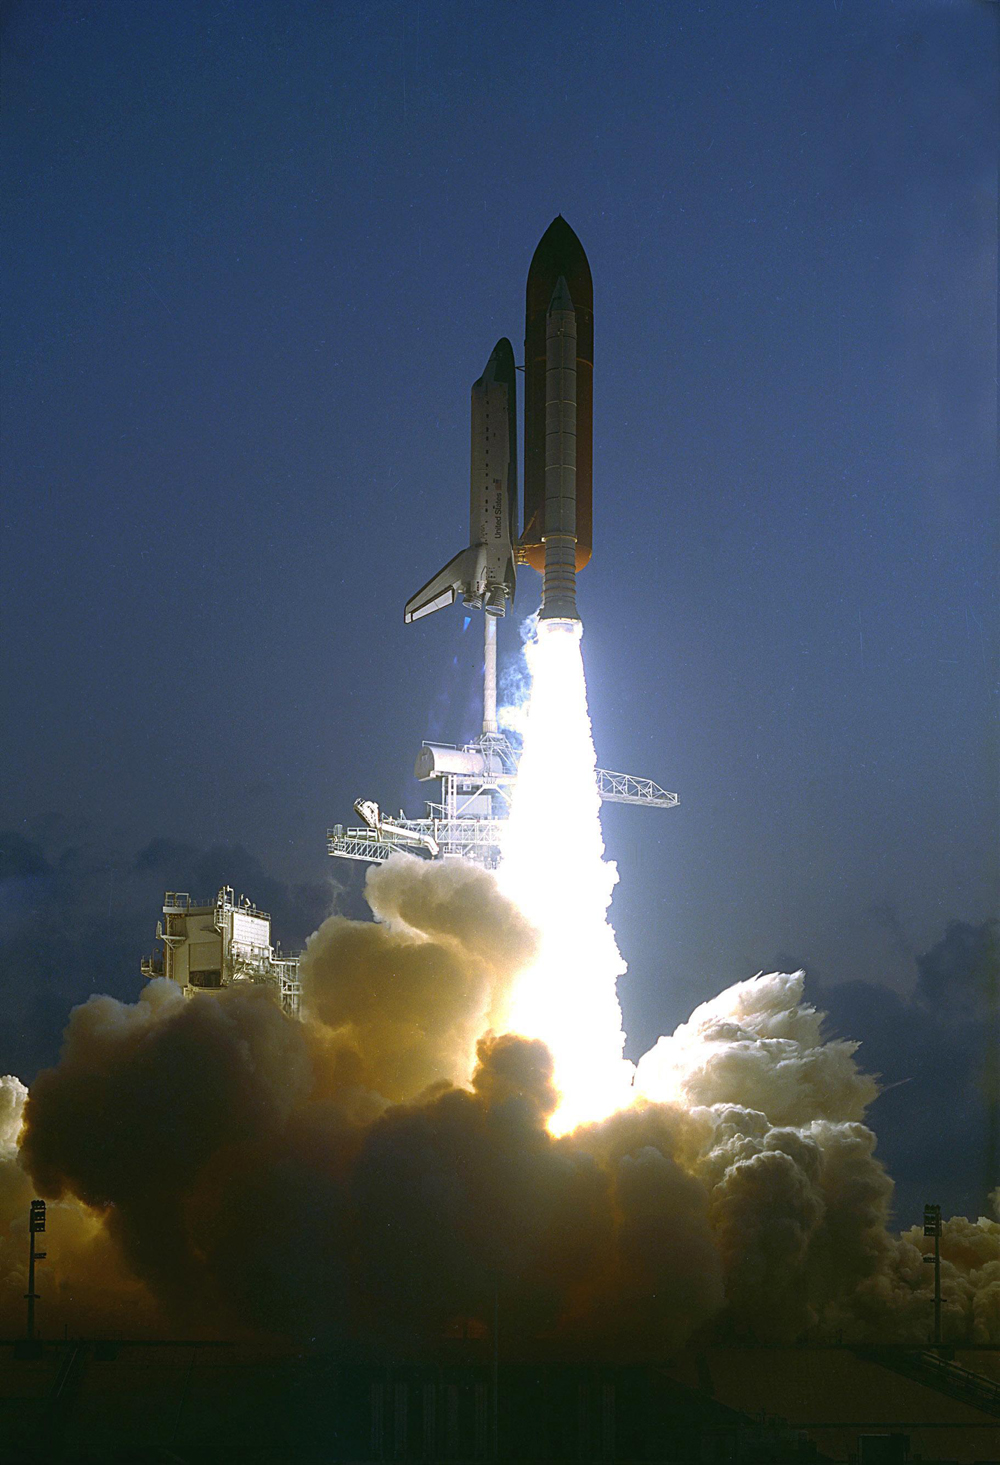 nasa first space mission - photo #5